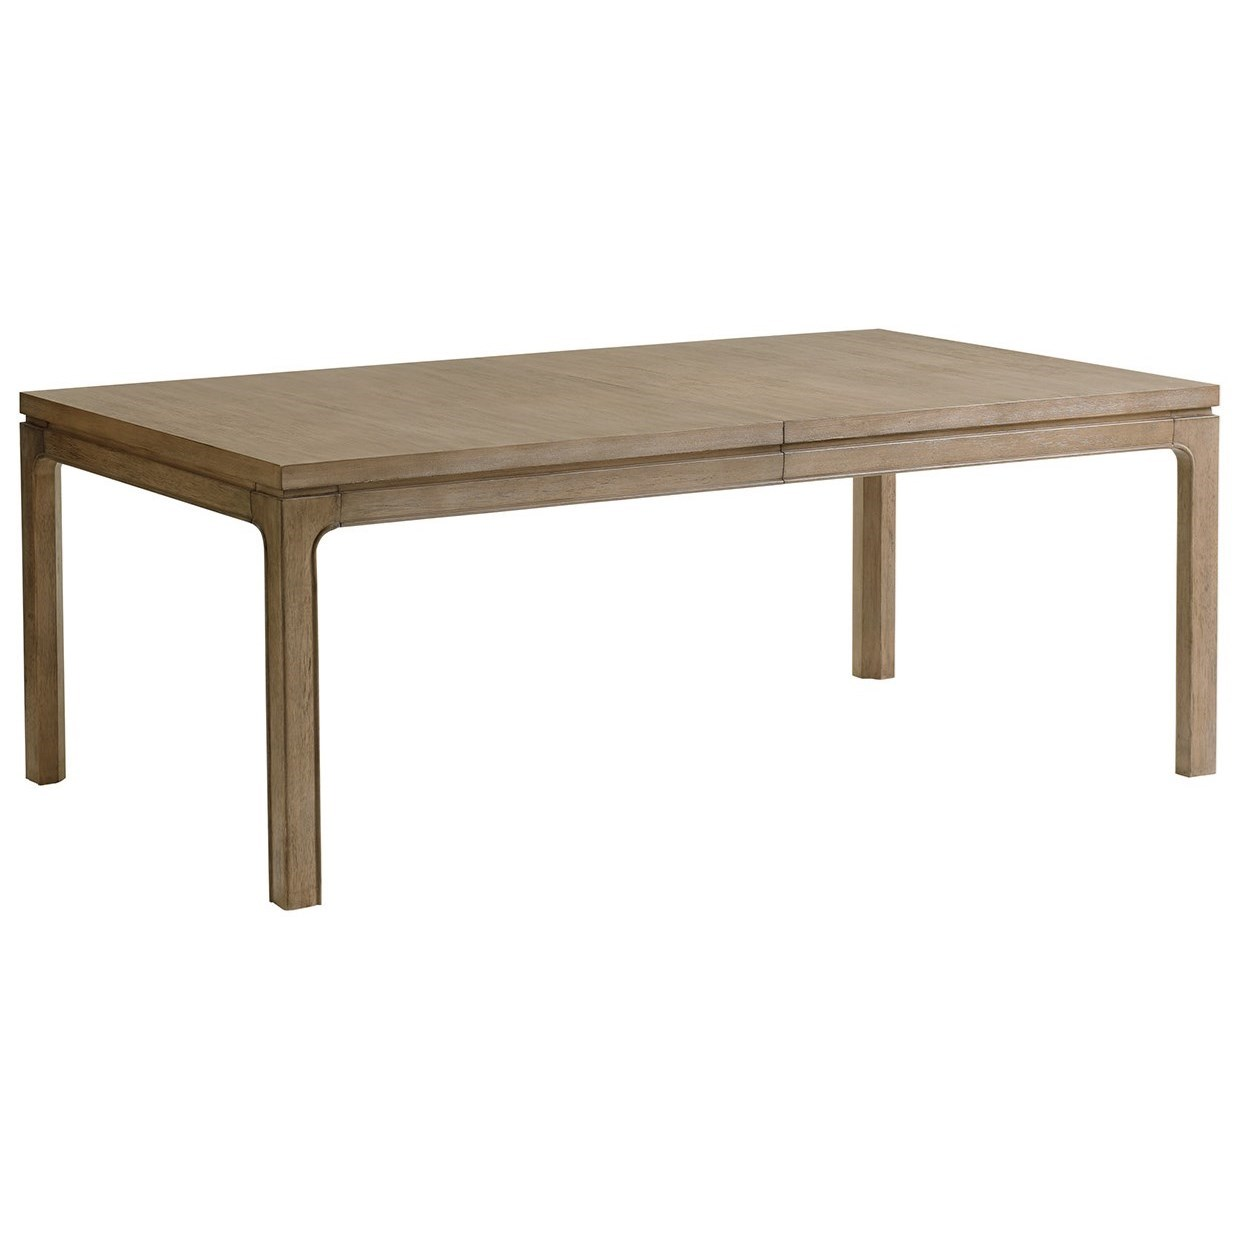 Shadow Play Concorde Rectangular Dining Table by Lexington at Baer's Furniture